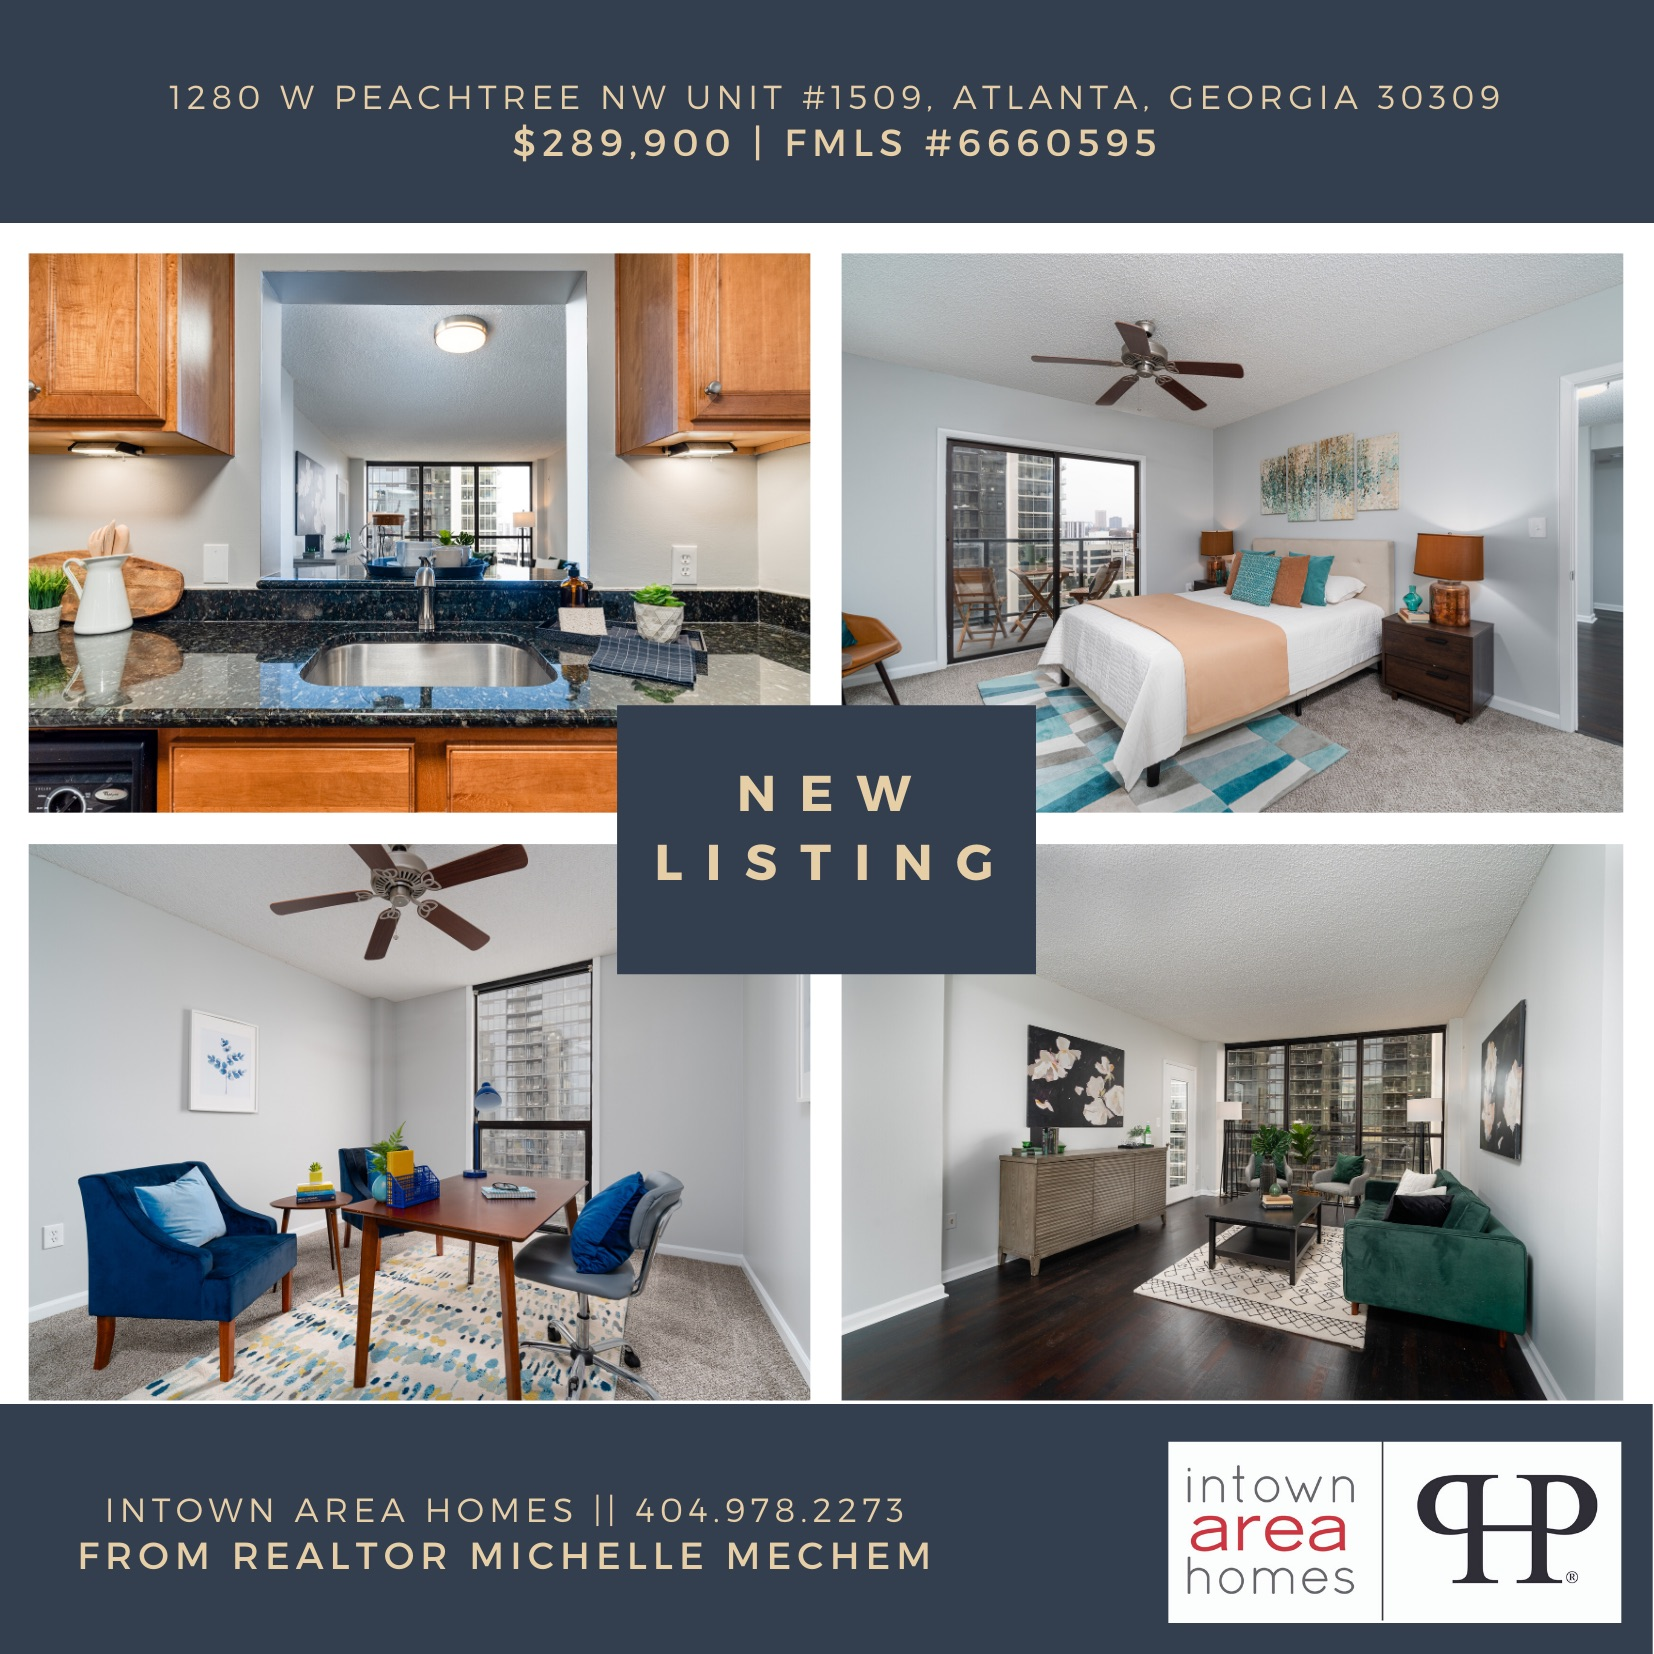 NEW LISTING! 1280 W Peachtree NW Unit #1509, Atlanta, GA 30309